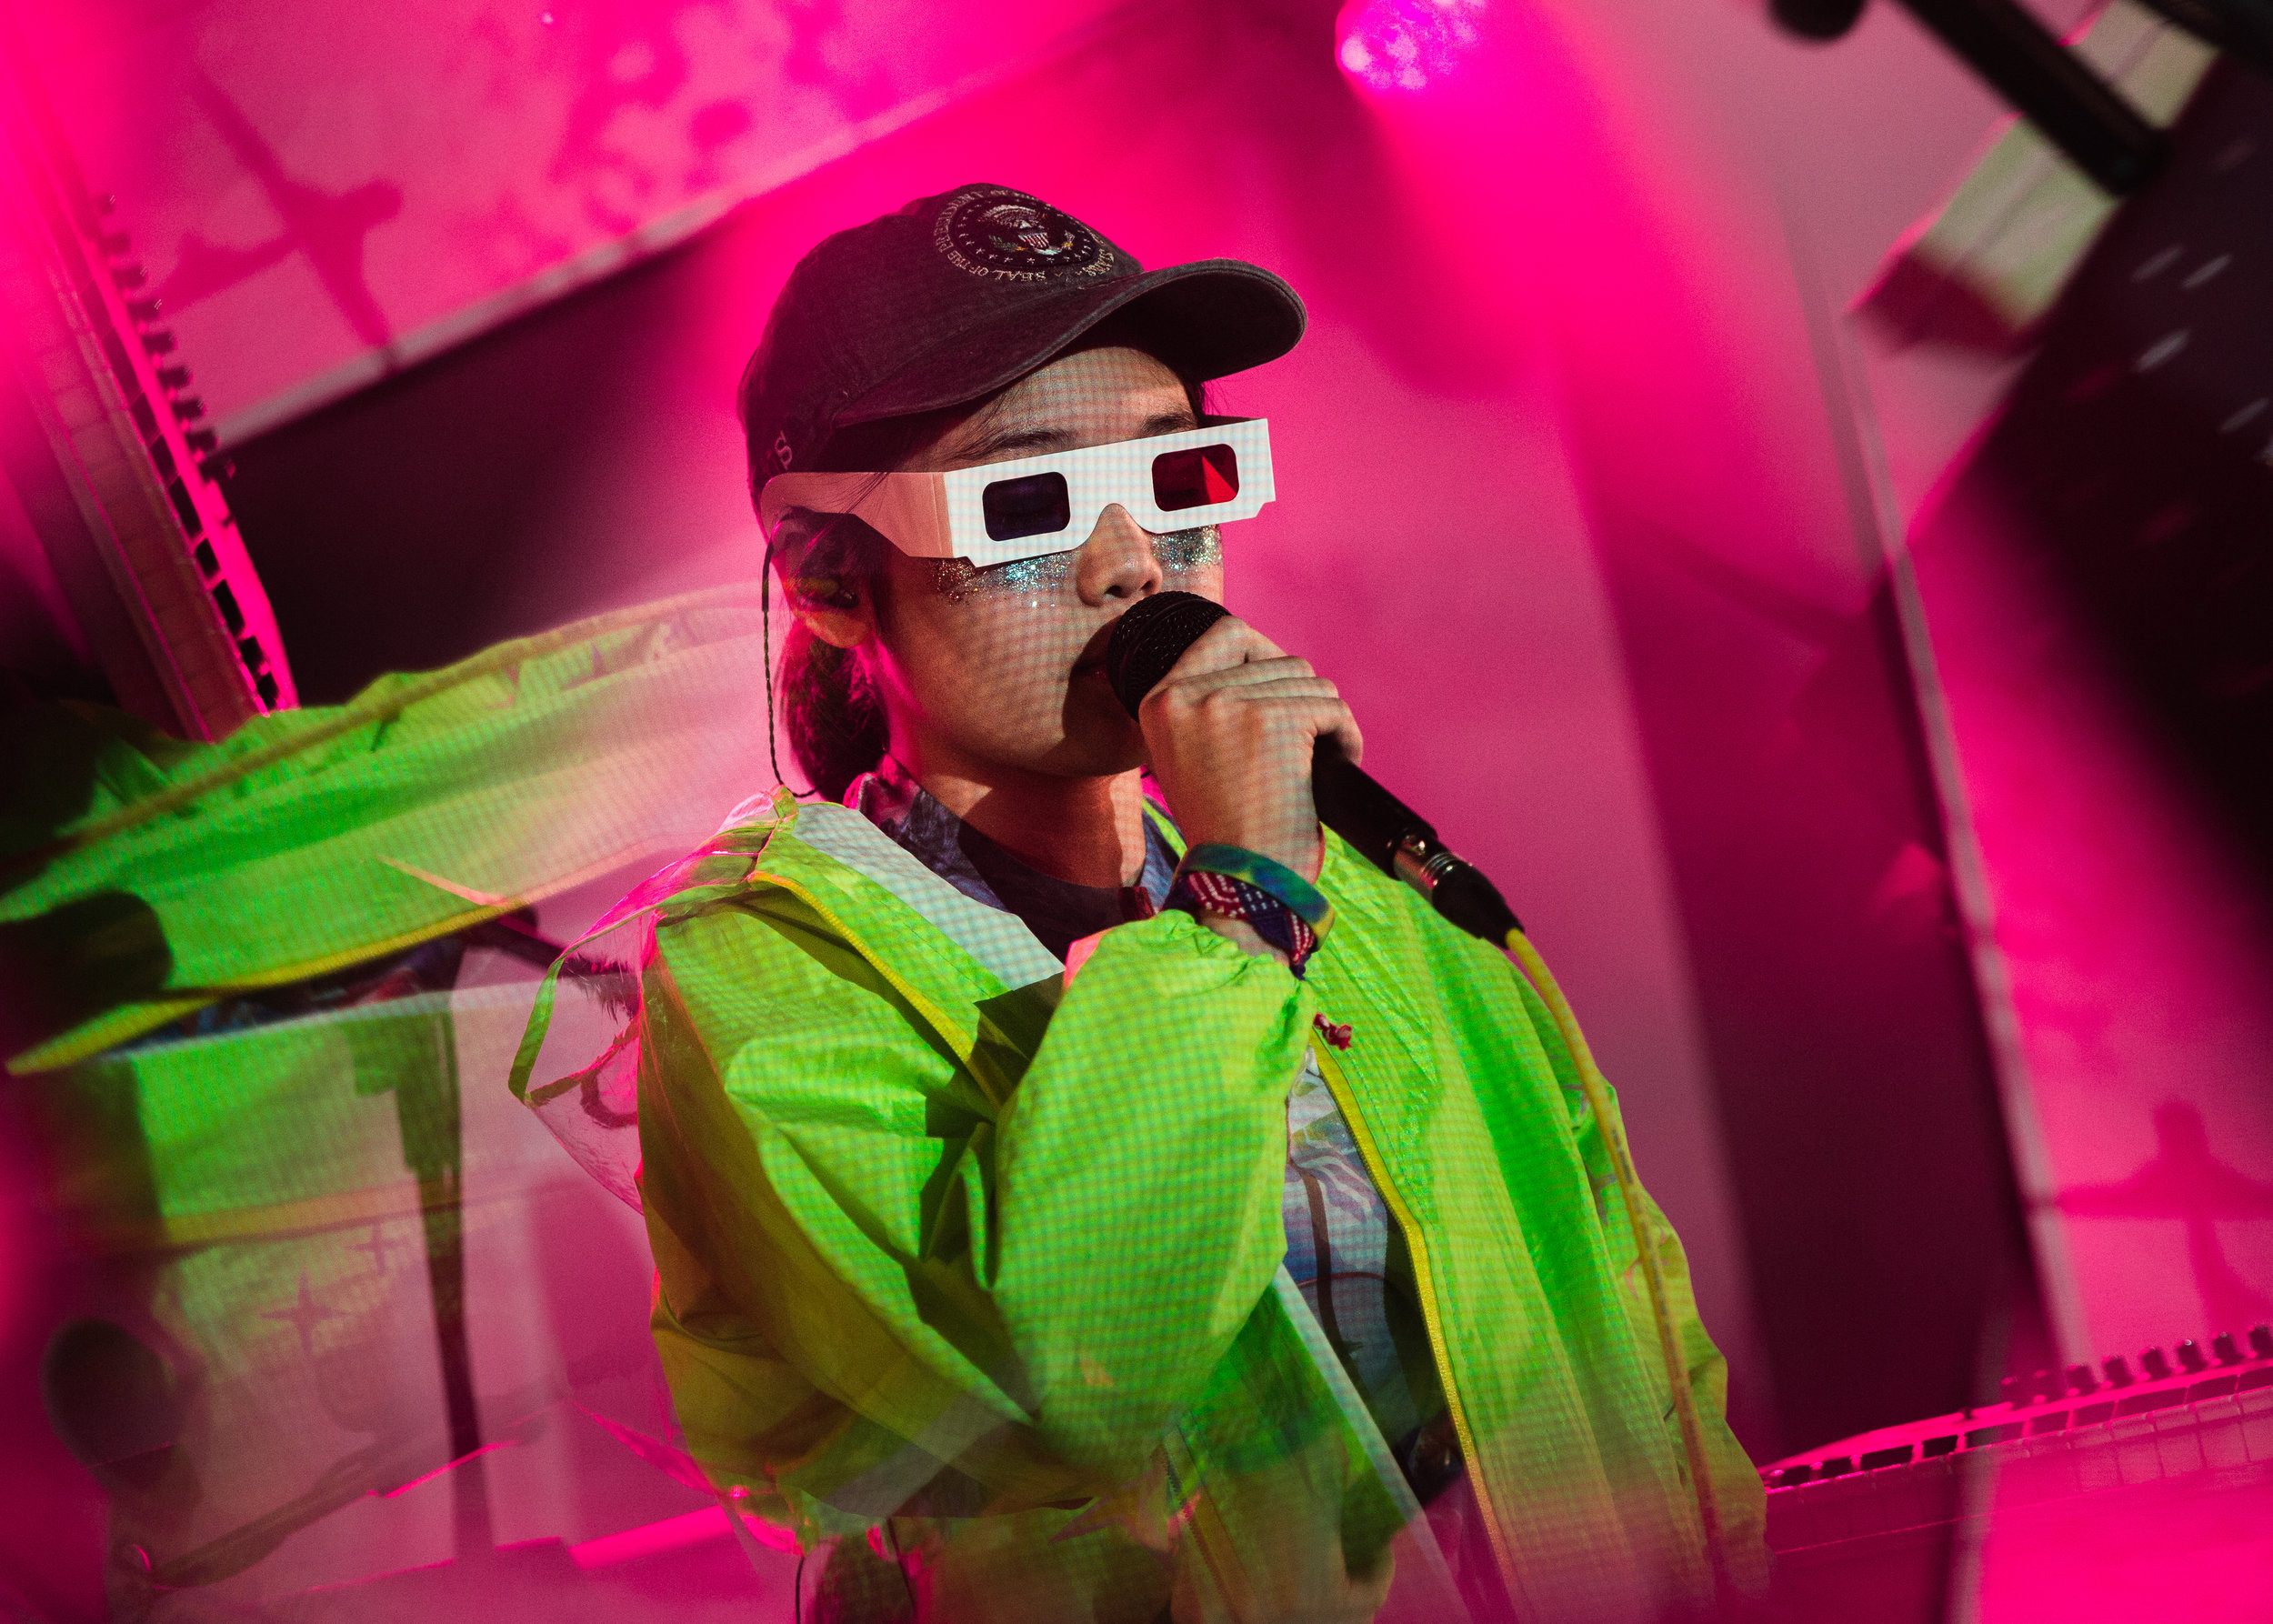 kirby-gladstein-photography-superorganism-concert-moroccan-lounge-los-angeles-1